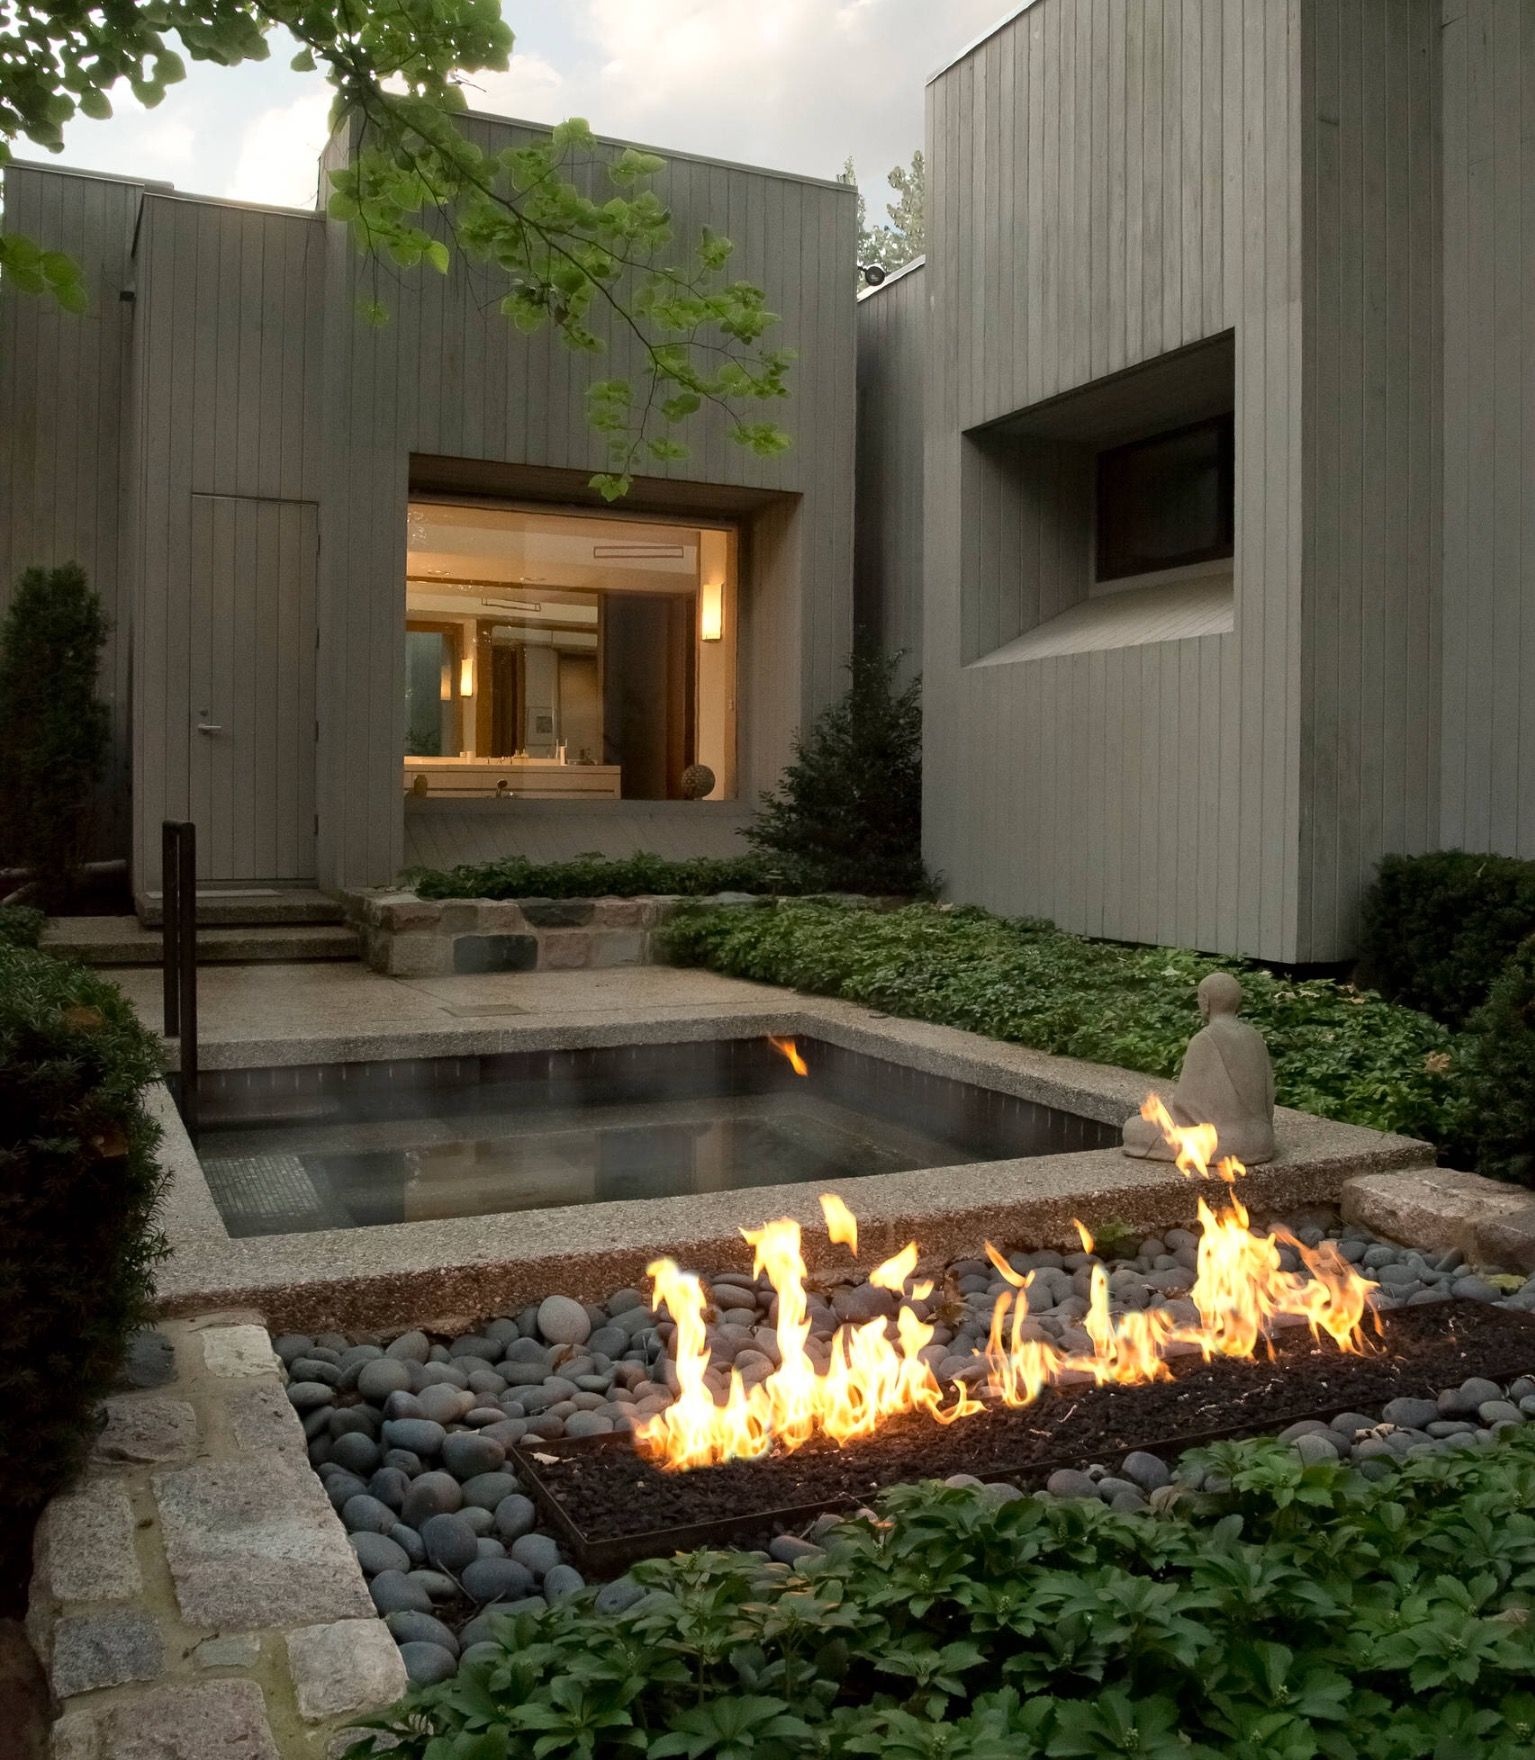 fire pit pool small garden landscaping residential landscape